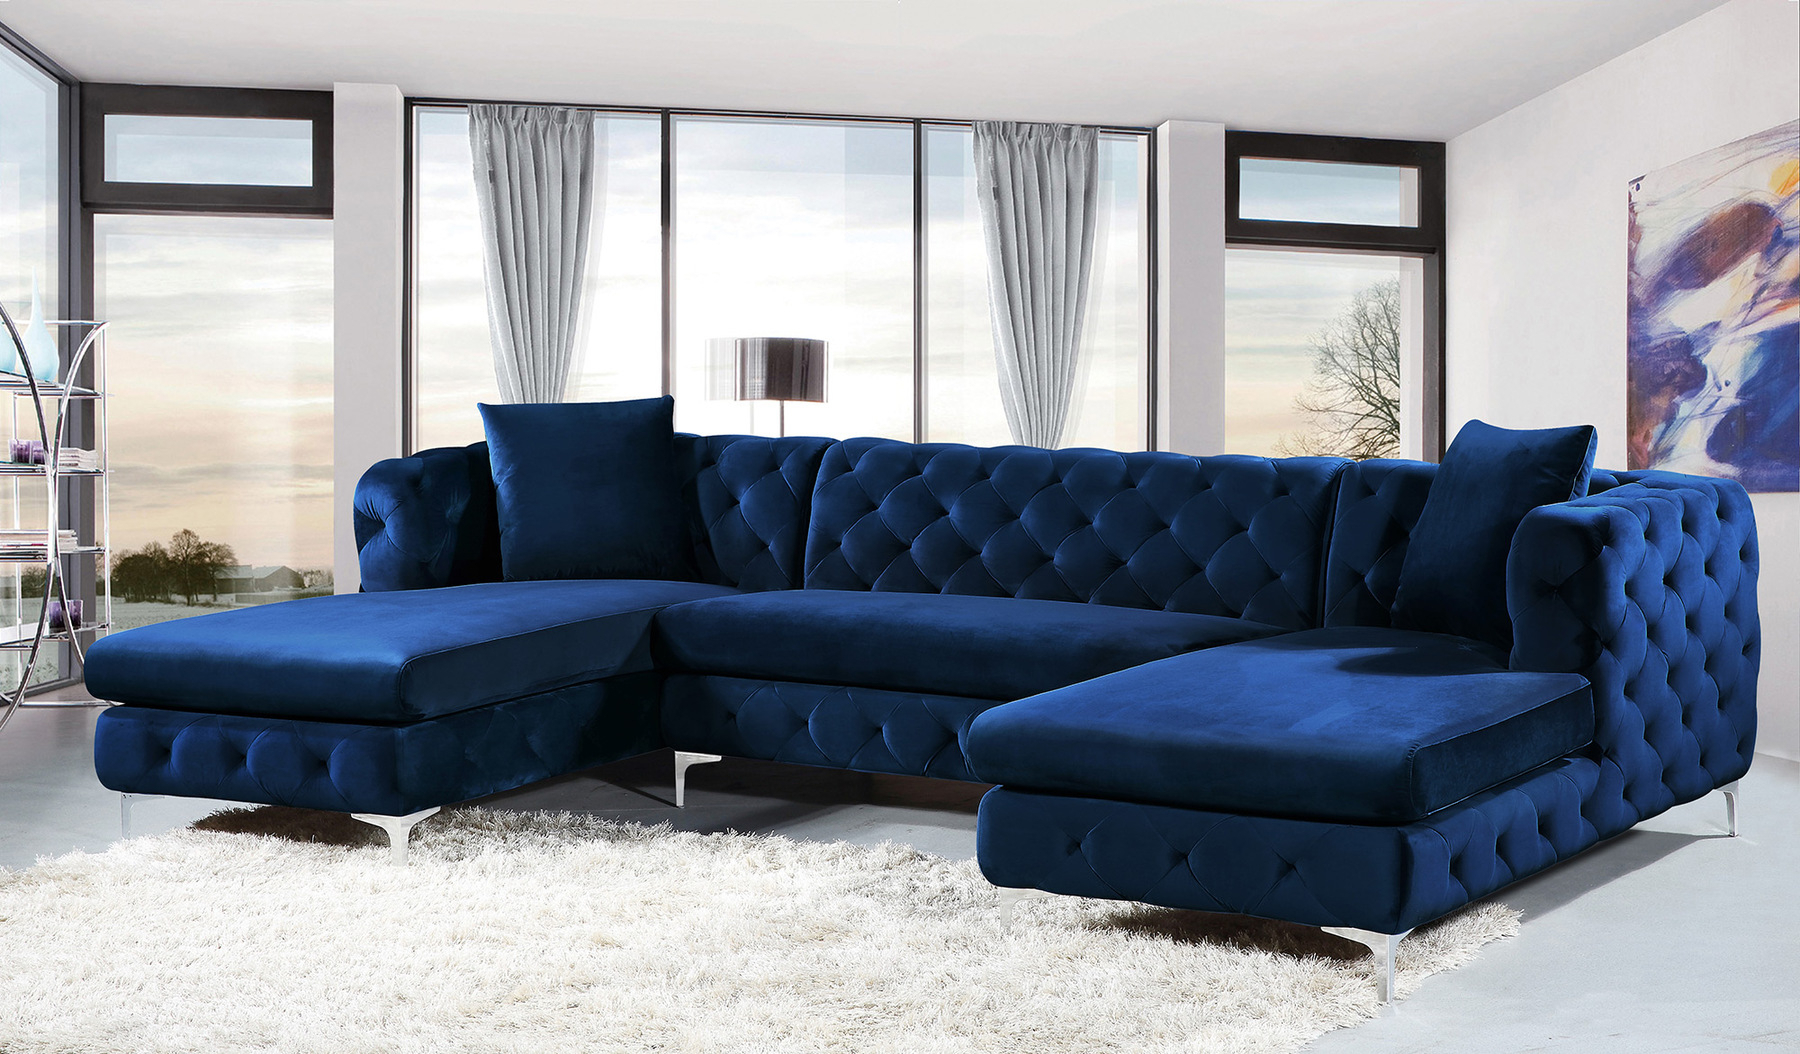 Blue Sectional Sofa Modular Sofas For Small Spaces Ashley Benton Pertaining To 2019 Benton 4 Piece Sectionals (View 3 of 20)